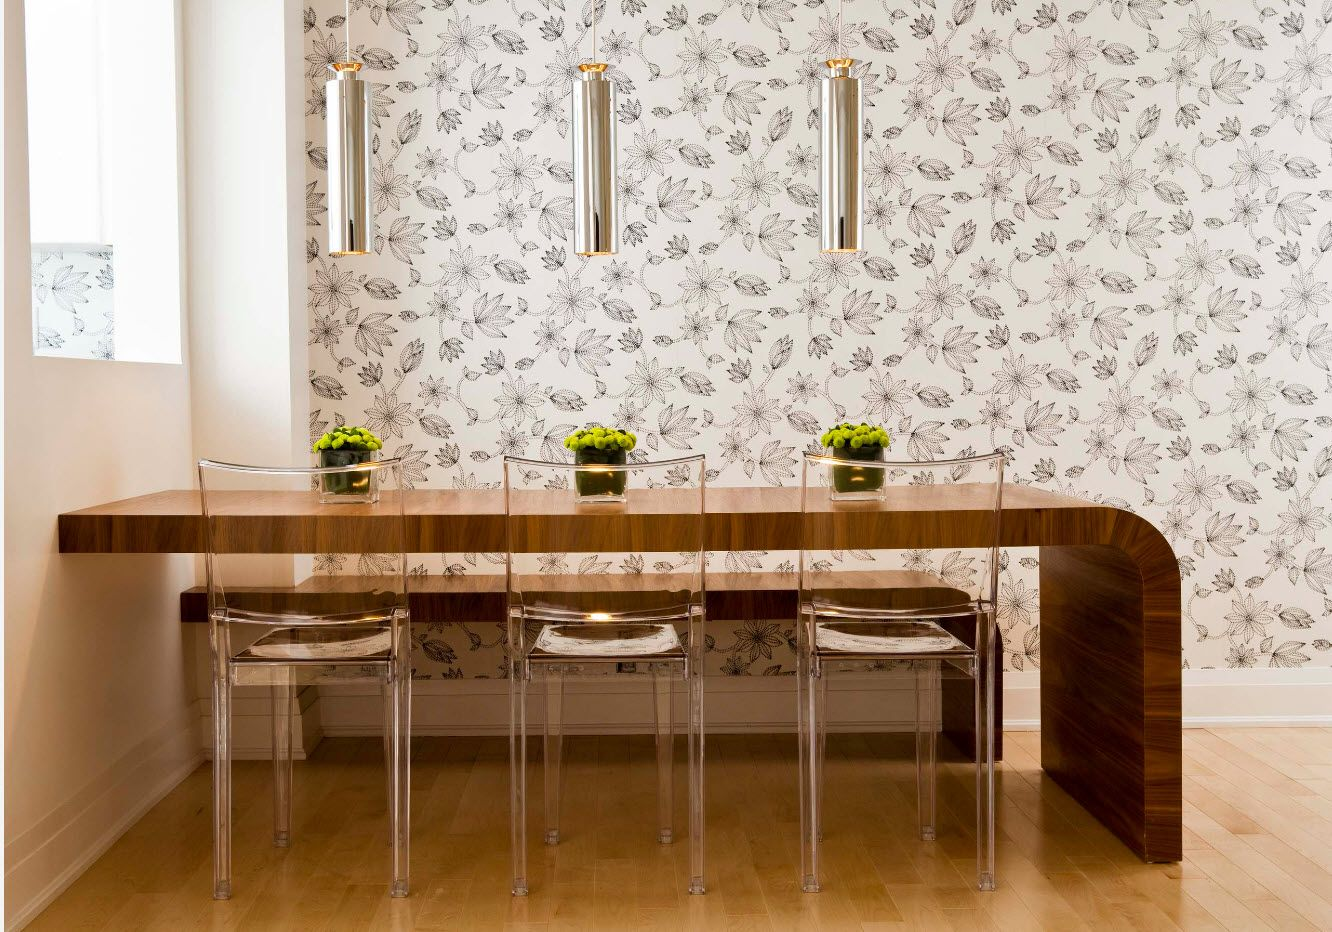 Wallpaper finished dining room with transparent plastic chairs at the bar-table